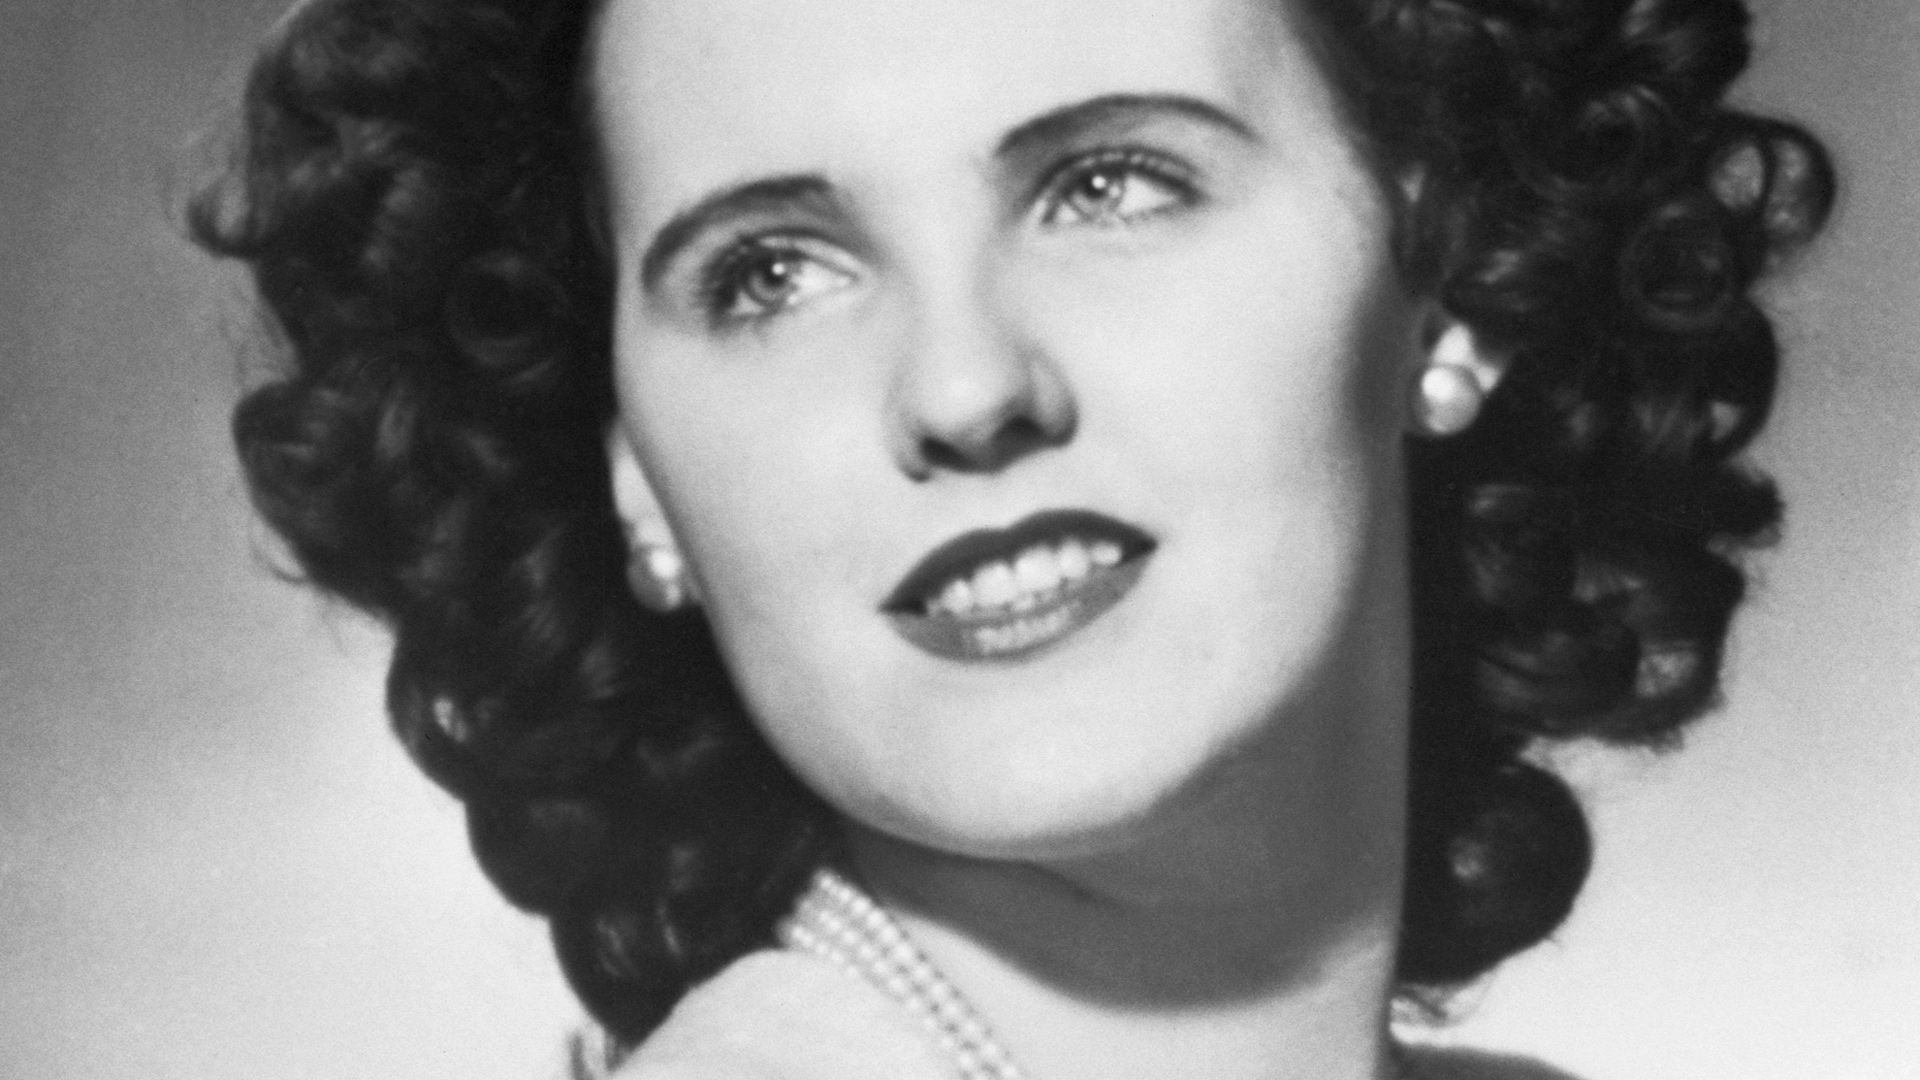 The Black Dahlia: How 'Moral Panic' Gripped the Community in the Wake of Elizabeth Short's Gruesome Murder